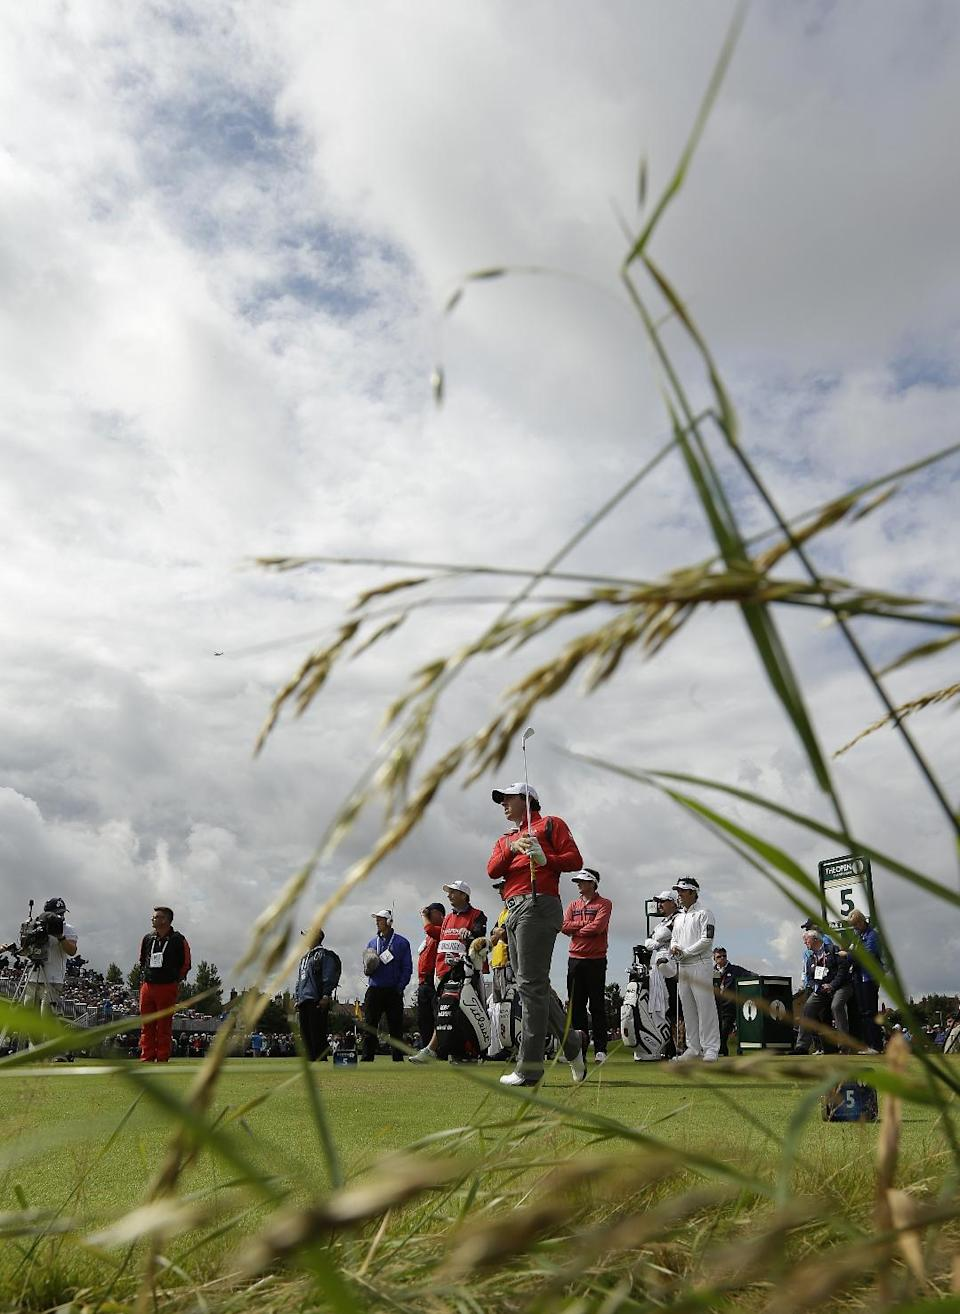 Rory McIlroy of Northern Ireland watches  his shot off the fifth tee at Royal Lytham & St Annes golf club during the second round of the British Open Golf Championship, Lytham St Annes, England, Friday, July 20, 2012. (AP Photo/Jon Super)